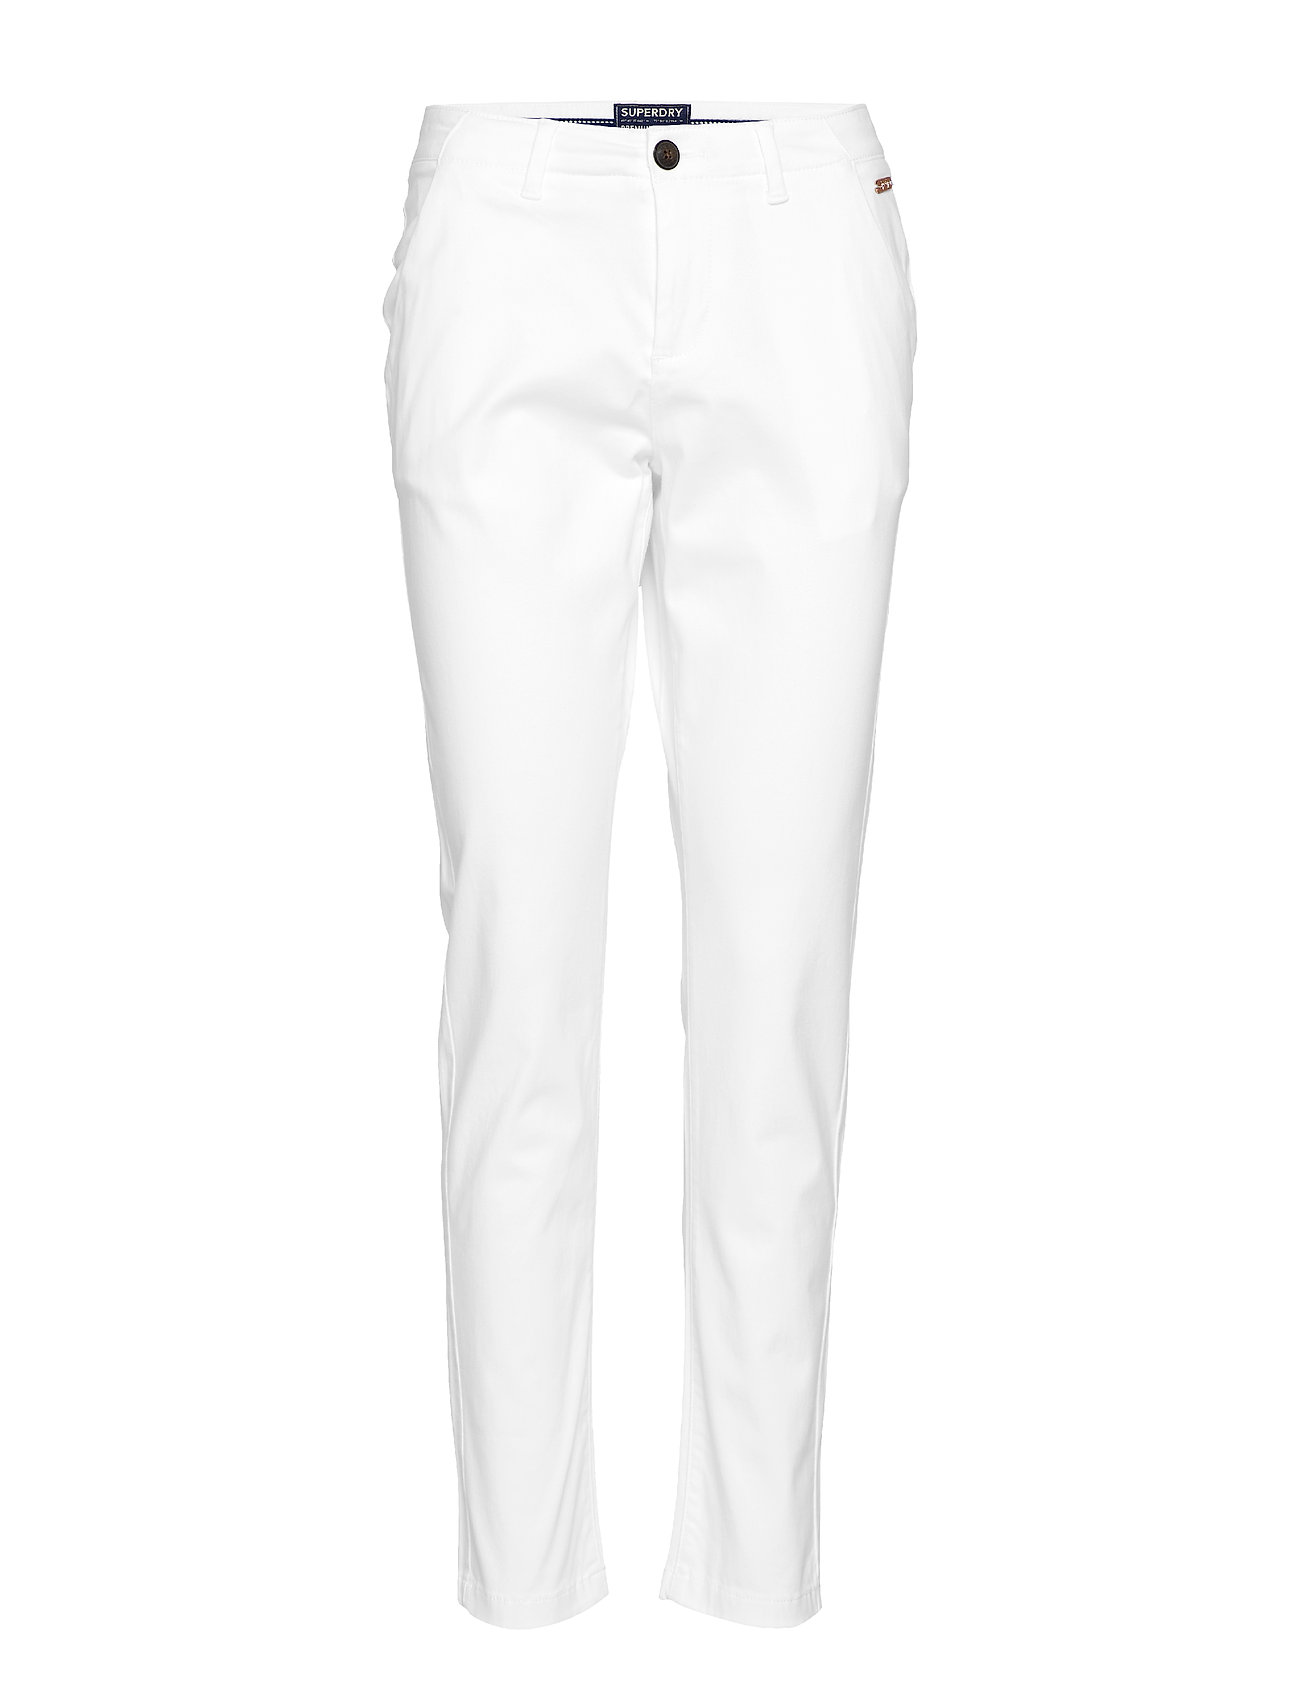 Superdry CITY CHINO PANT - OPTIC WHITE